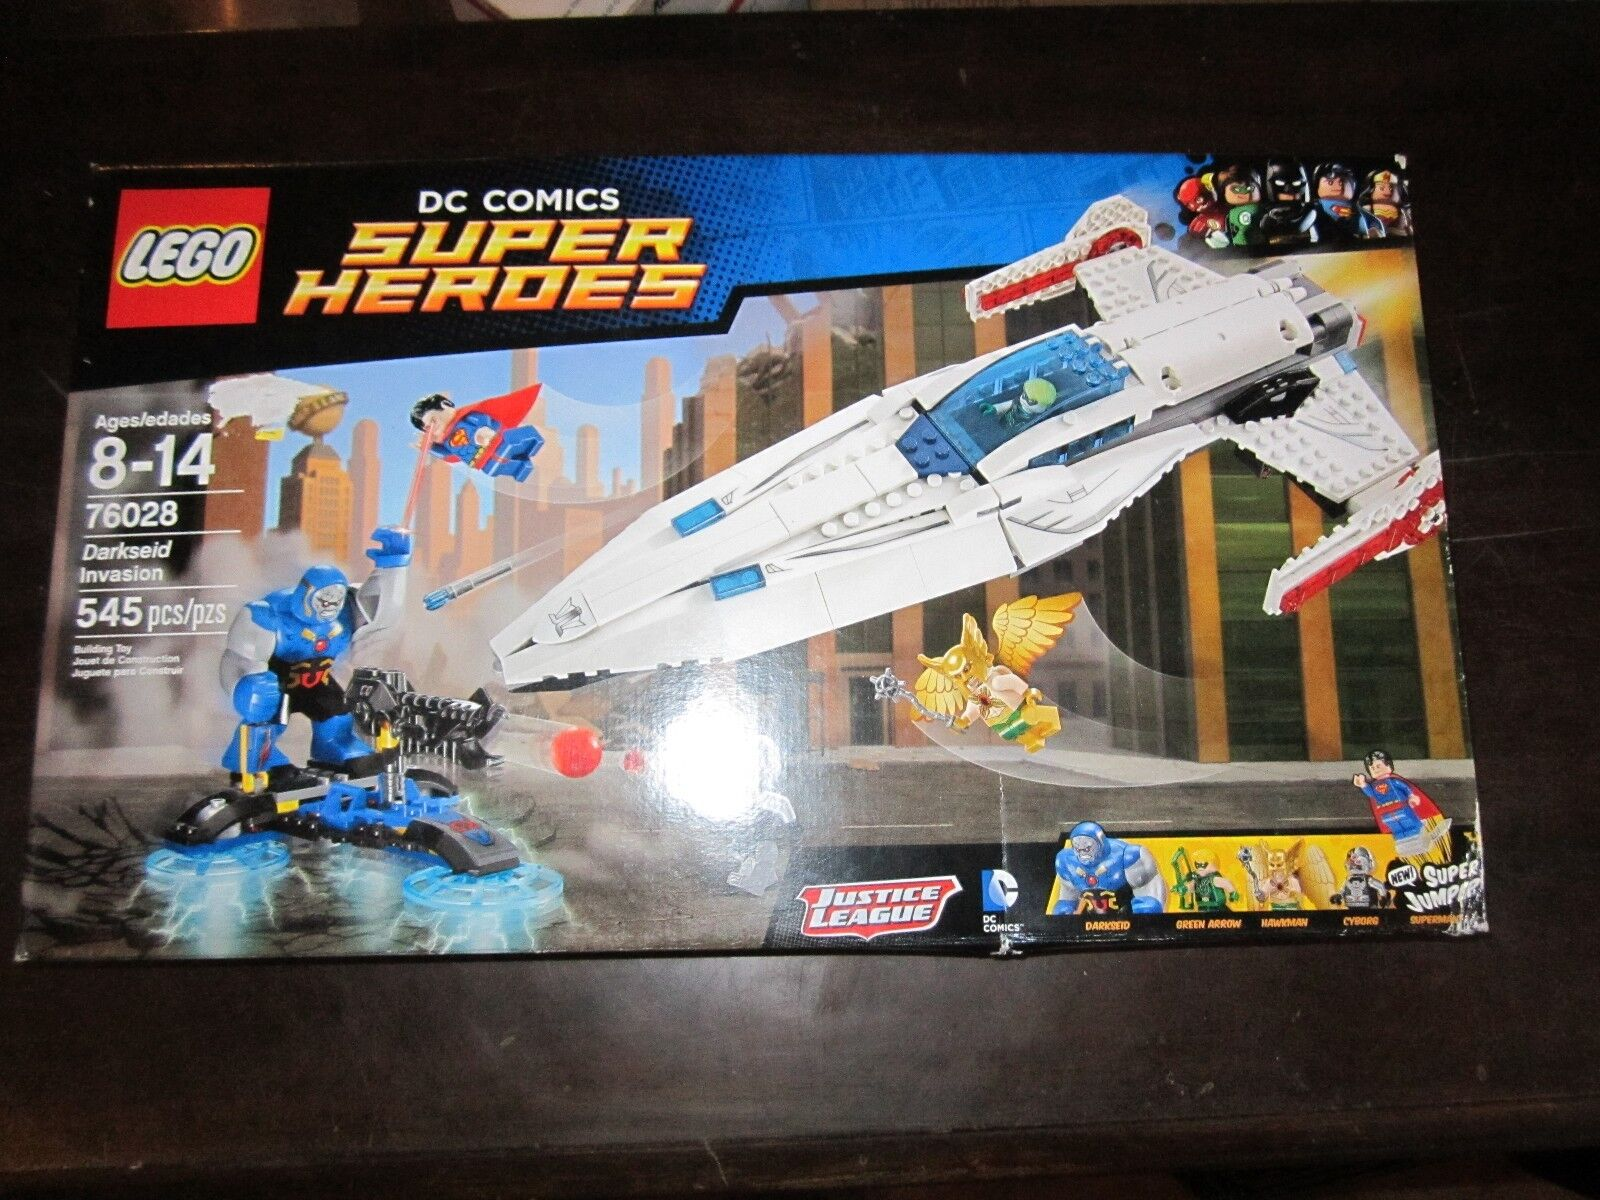 NEW LEGO 76028 Darkseid Invasion  DC Comics Super Heroes Justice League Set Look